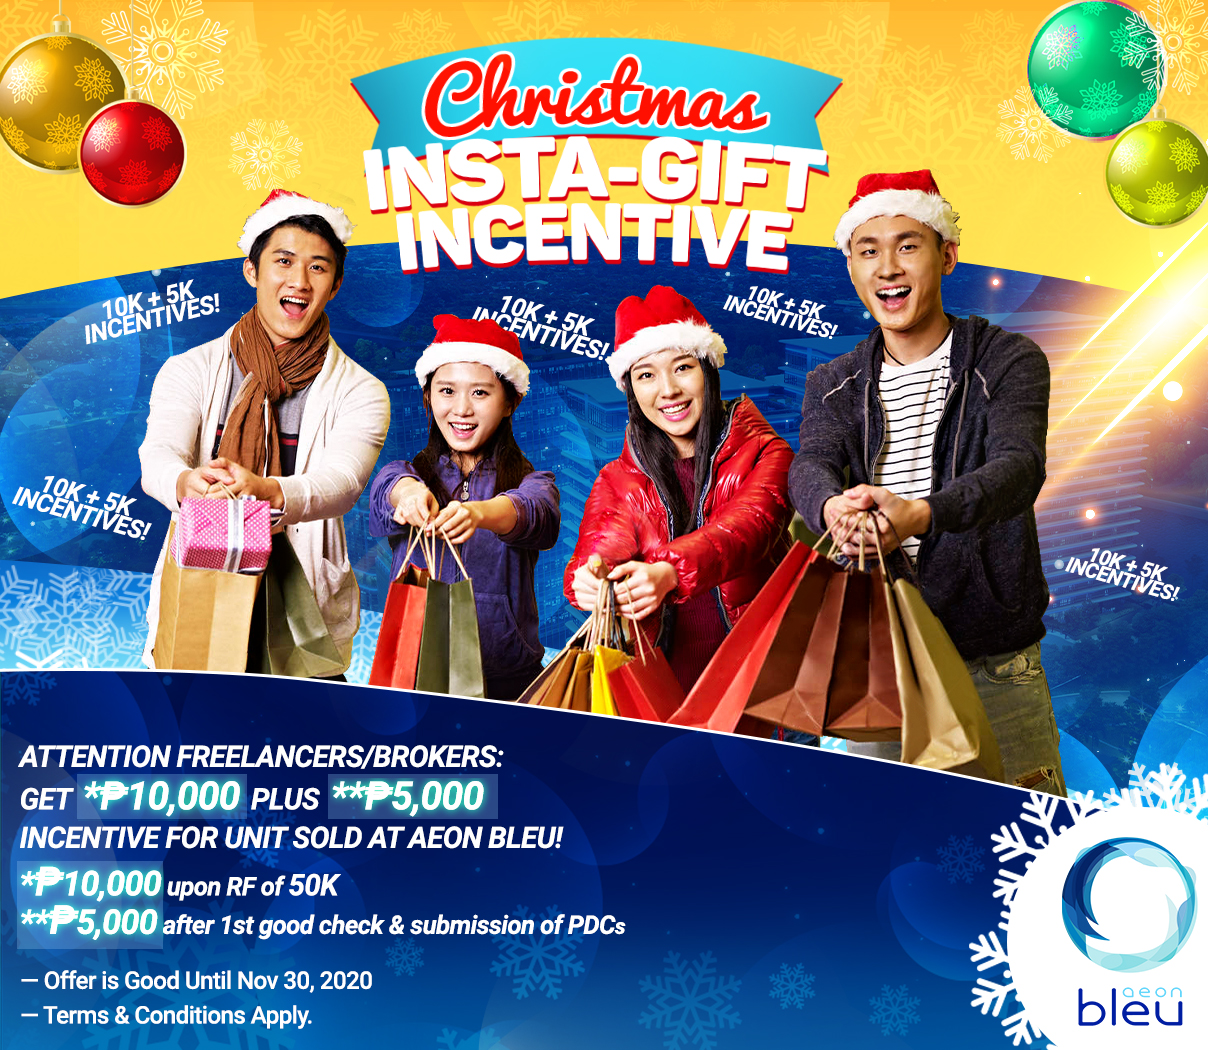 Aeon Bleu Instagift Incentive for sellers